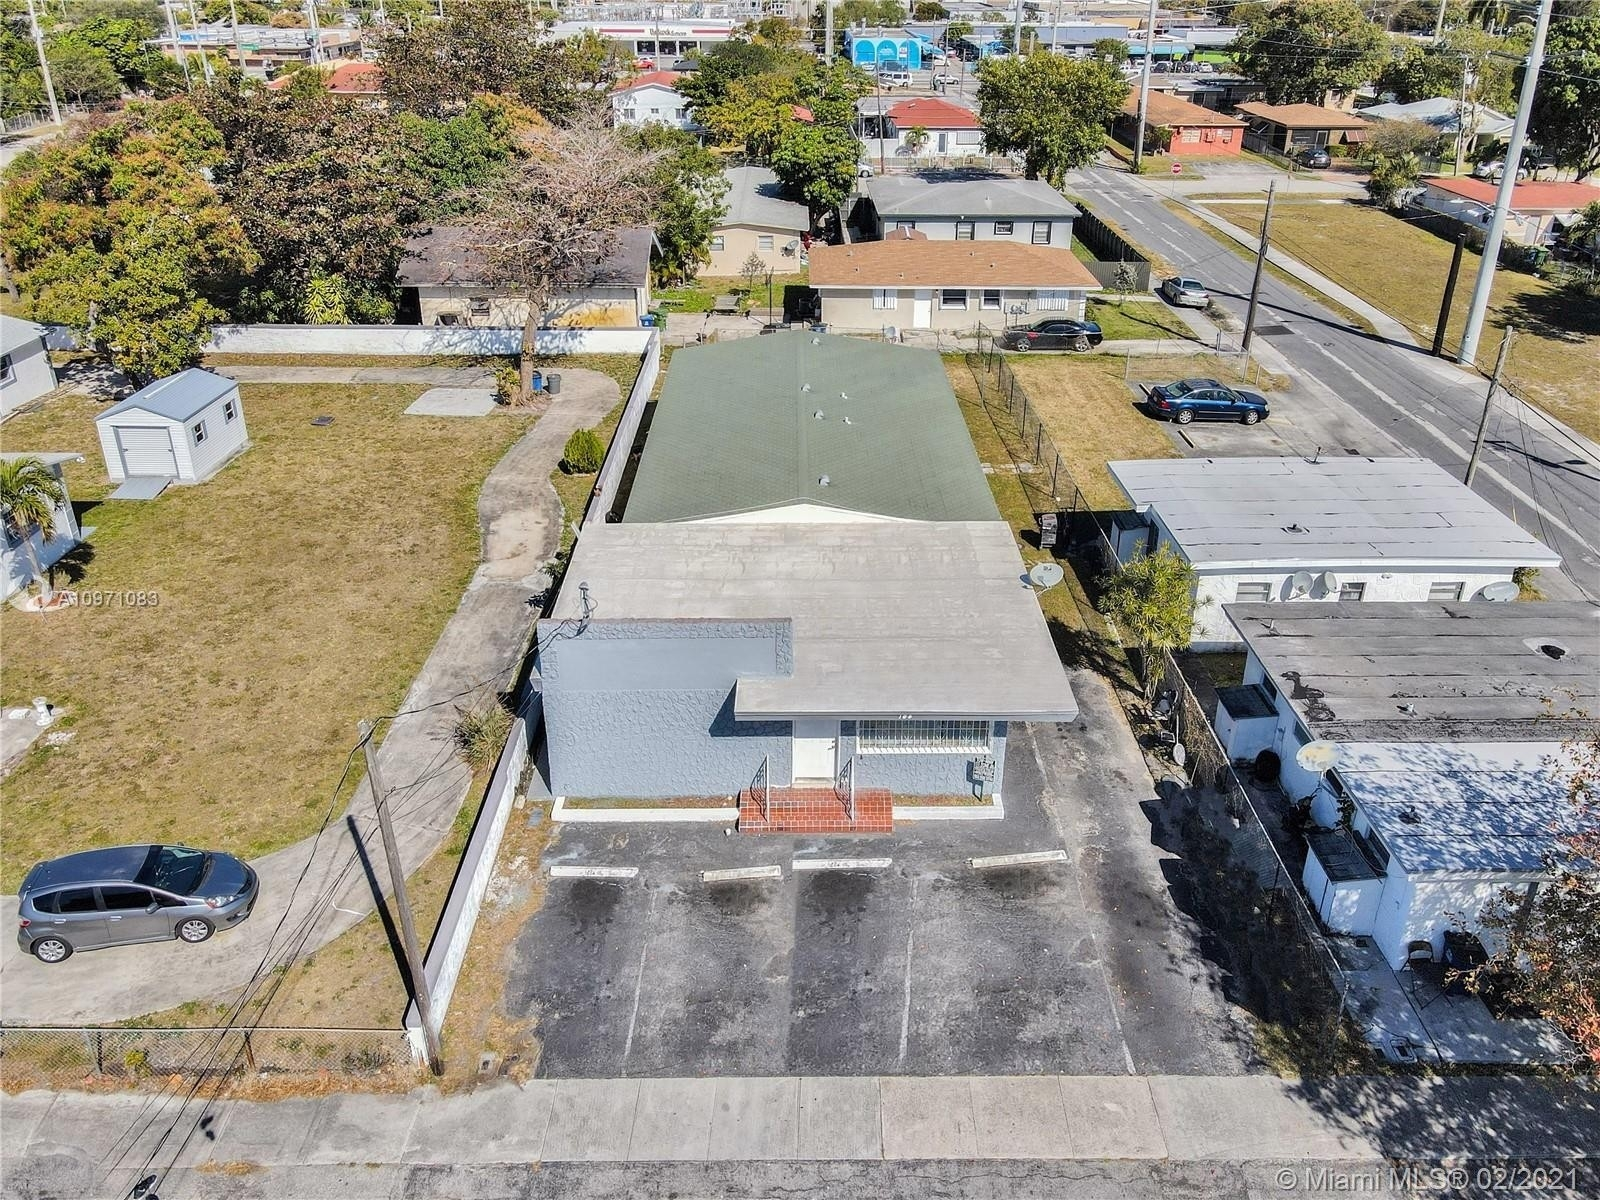 Multi Family Townhouse for Sale at Foster Road, Hallandale Beach, FL 33009